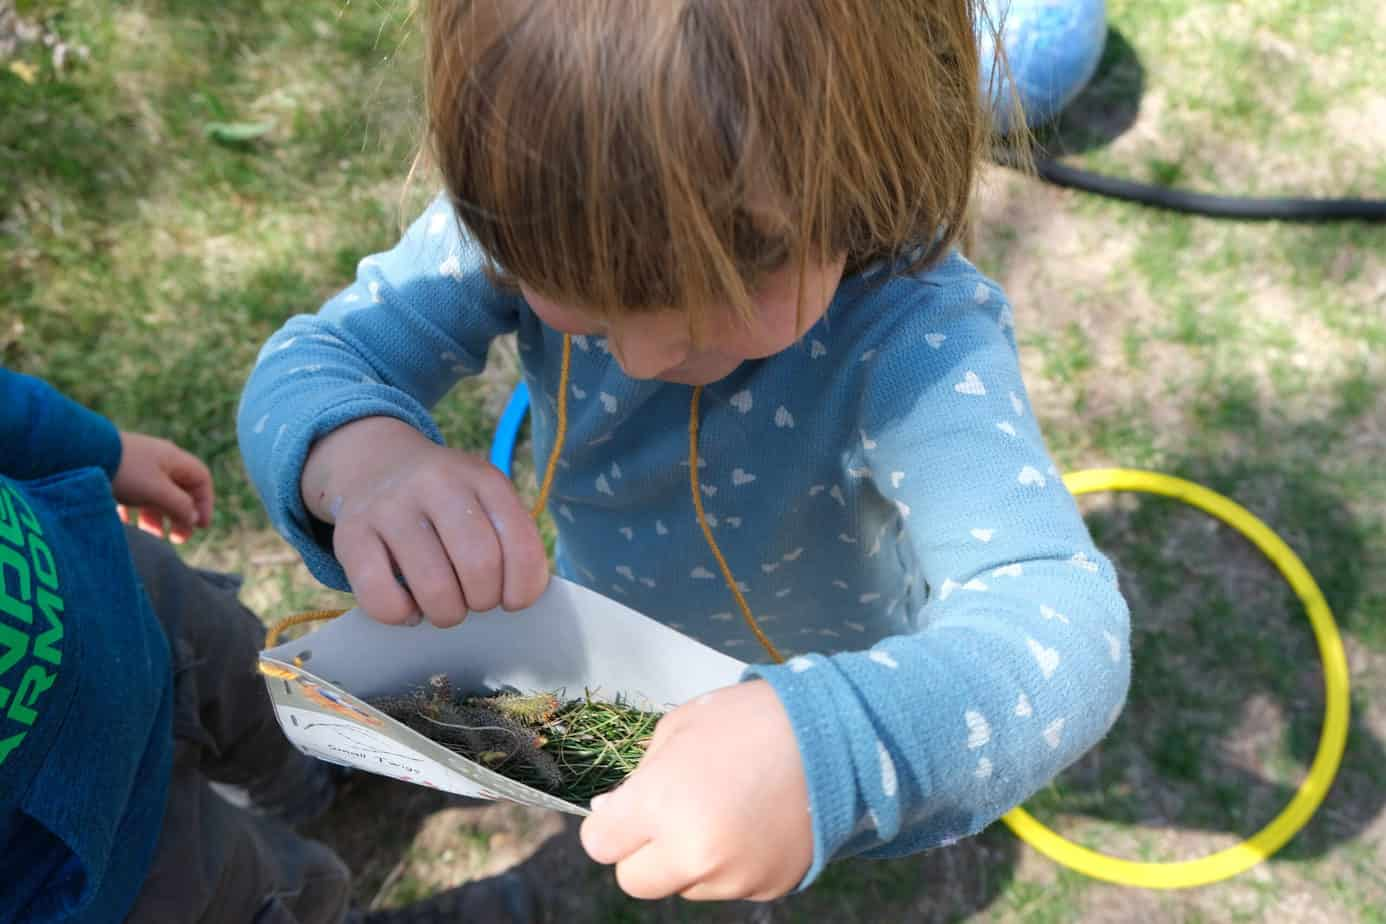 fun way to do scavenger hunts with kids for spring with satchel